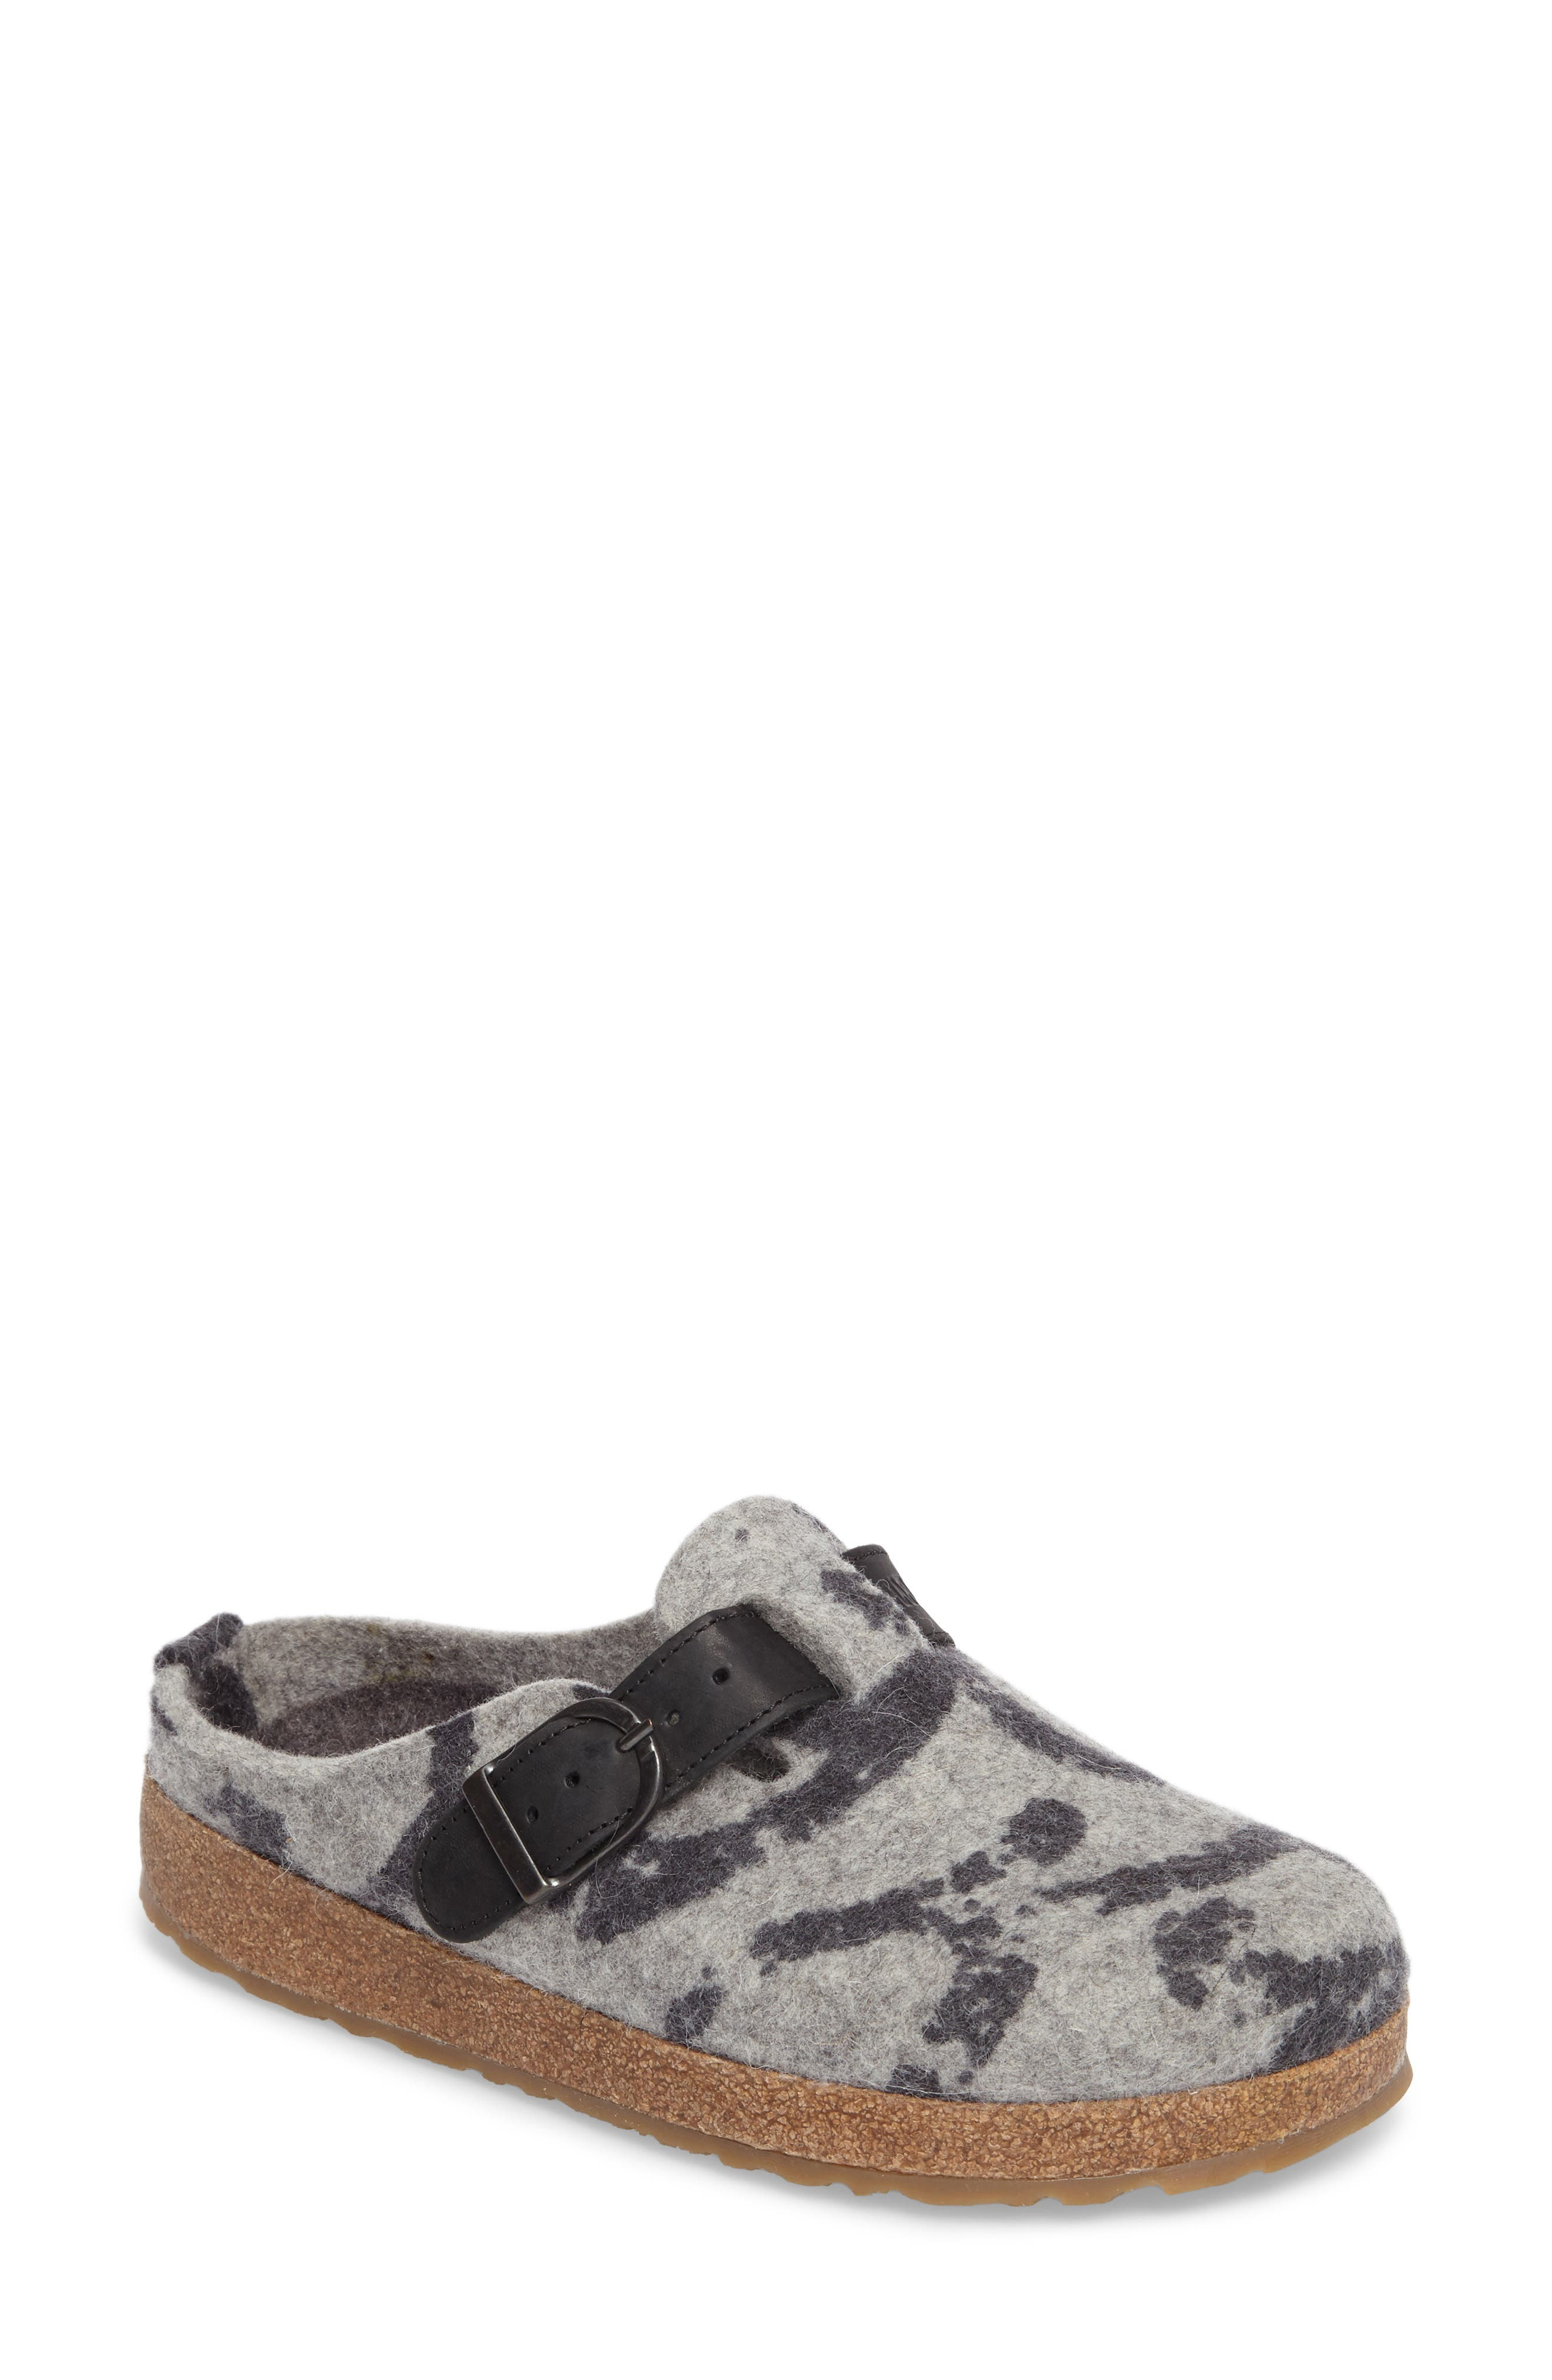 Alternate Image 1 Selected - Haflinger GZB Print Slipper (Women)